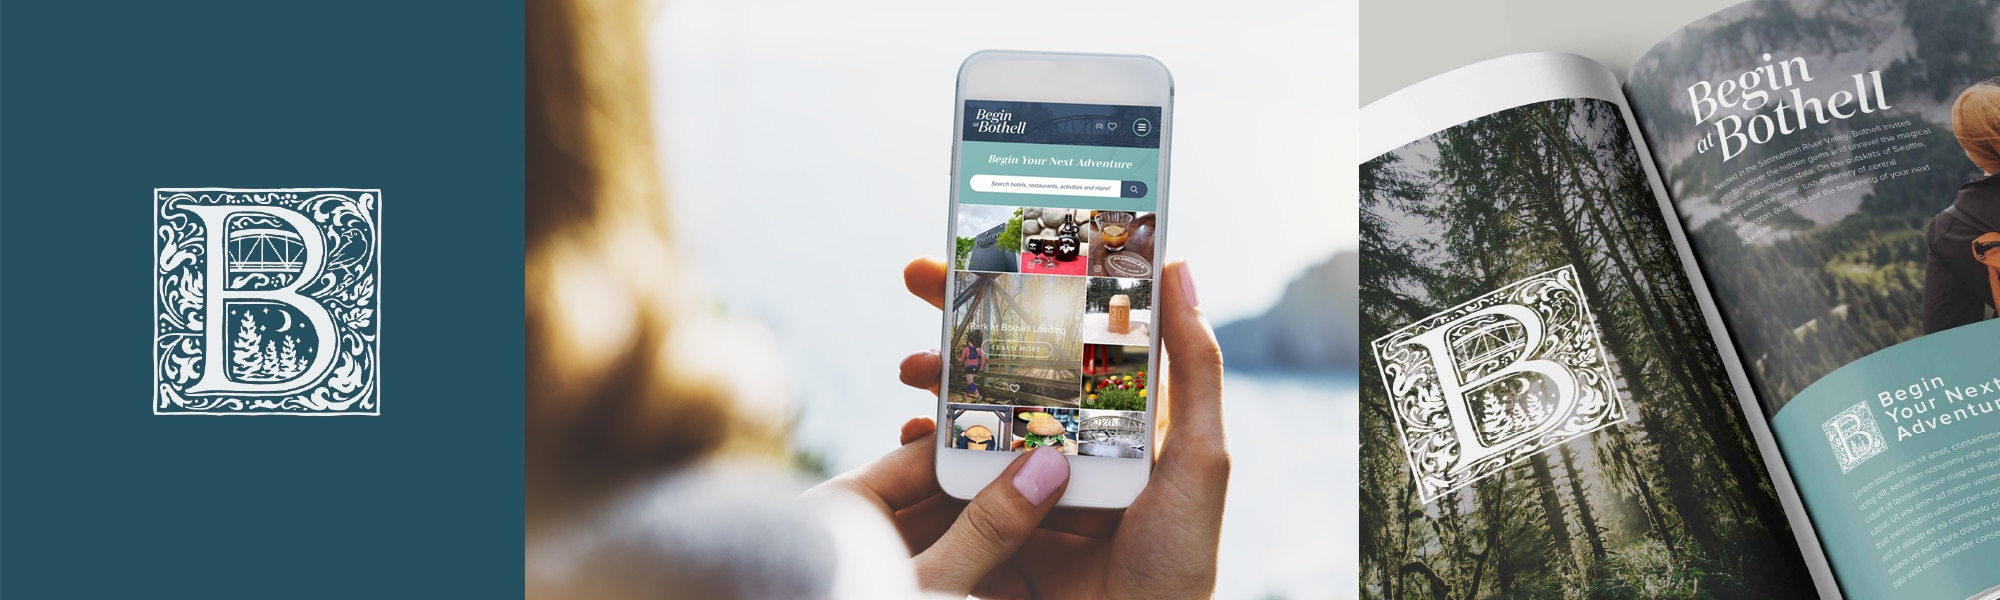 Capturing the Charm: Utilizing UGC in Travel + Tourism Web Design